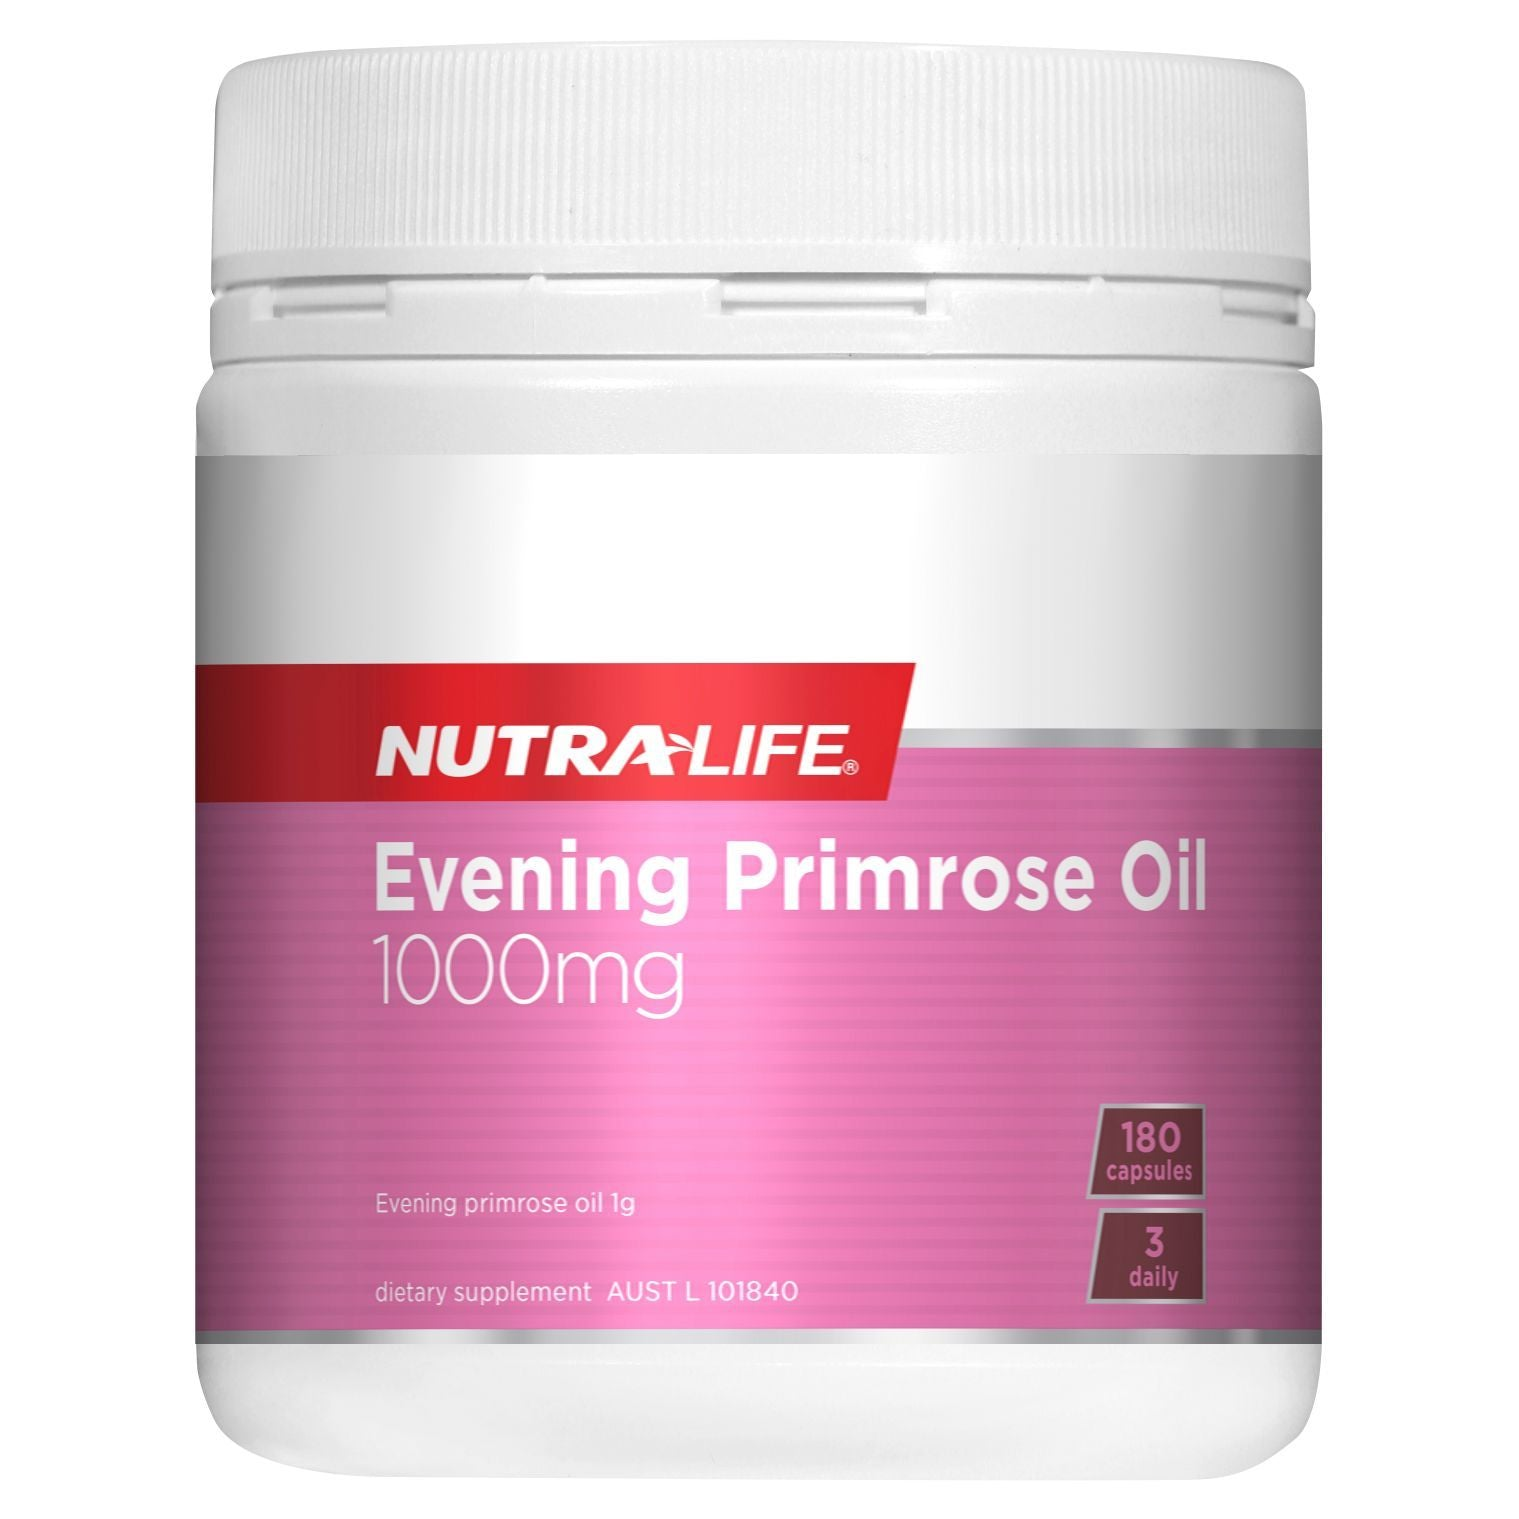 NUTRA-LIFE EVENING PRIMROSE OIL 180C